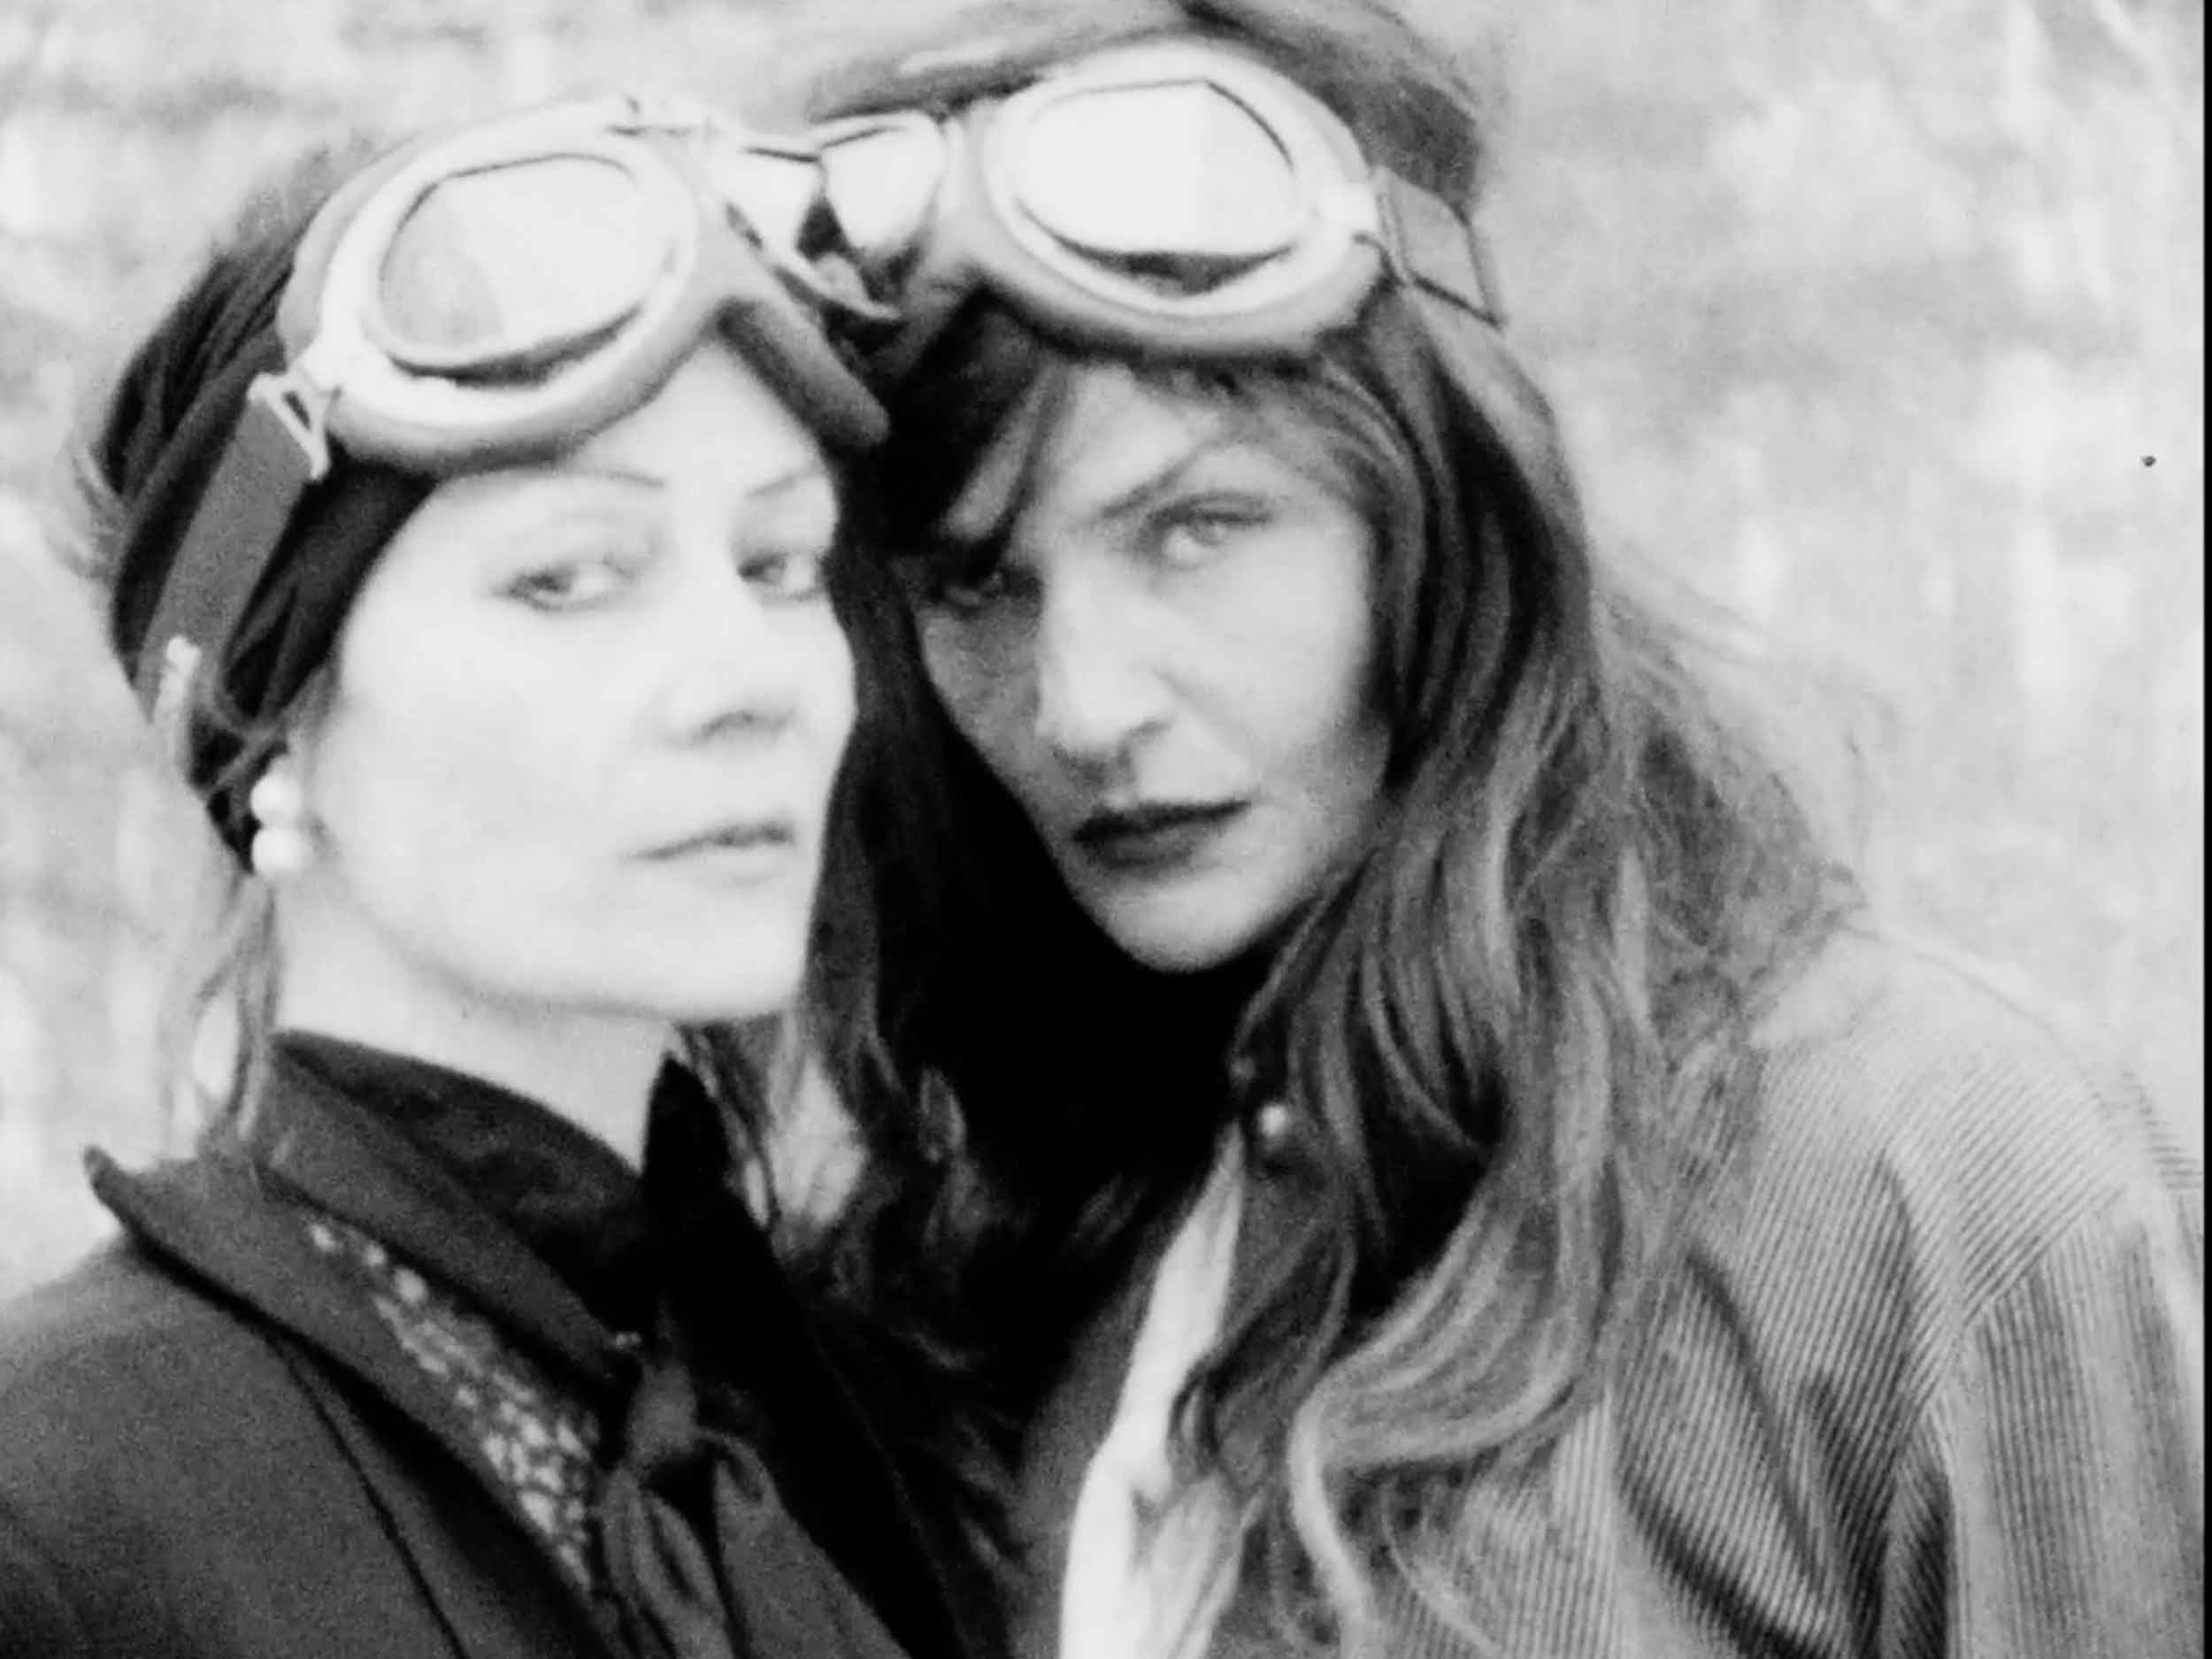 Helena Christensen and Camilla Staerk's new short film is a surreal exploration of friendship